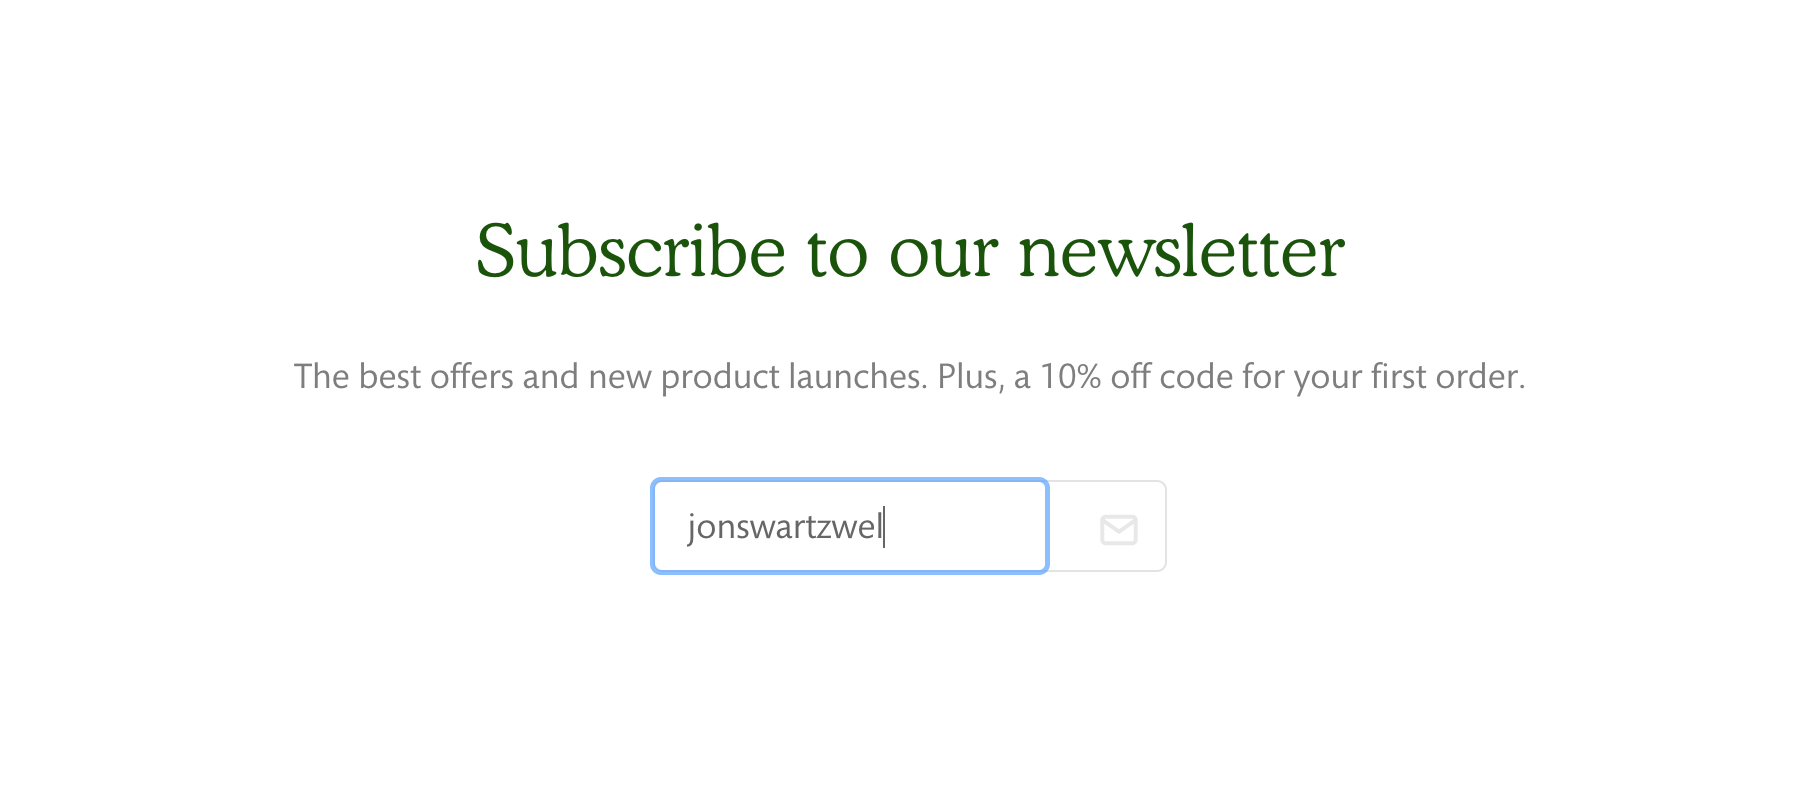 Newsletter_section_with_email_address_being_typed.png